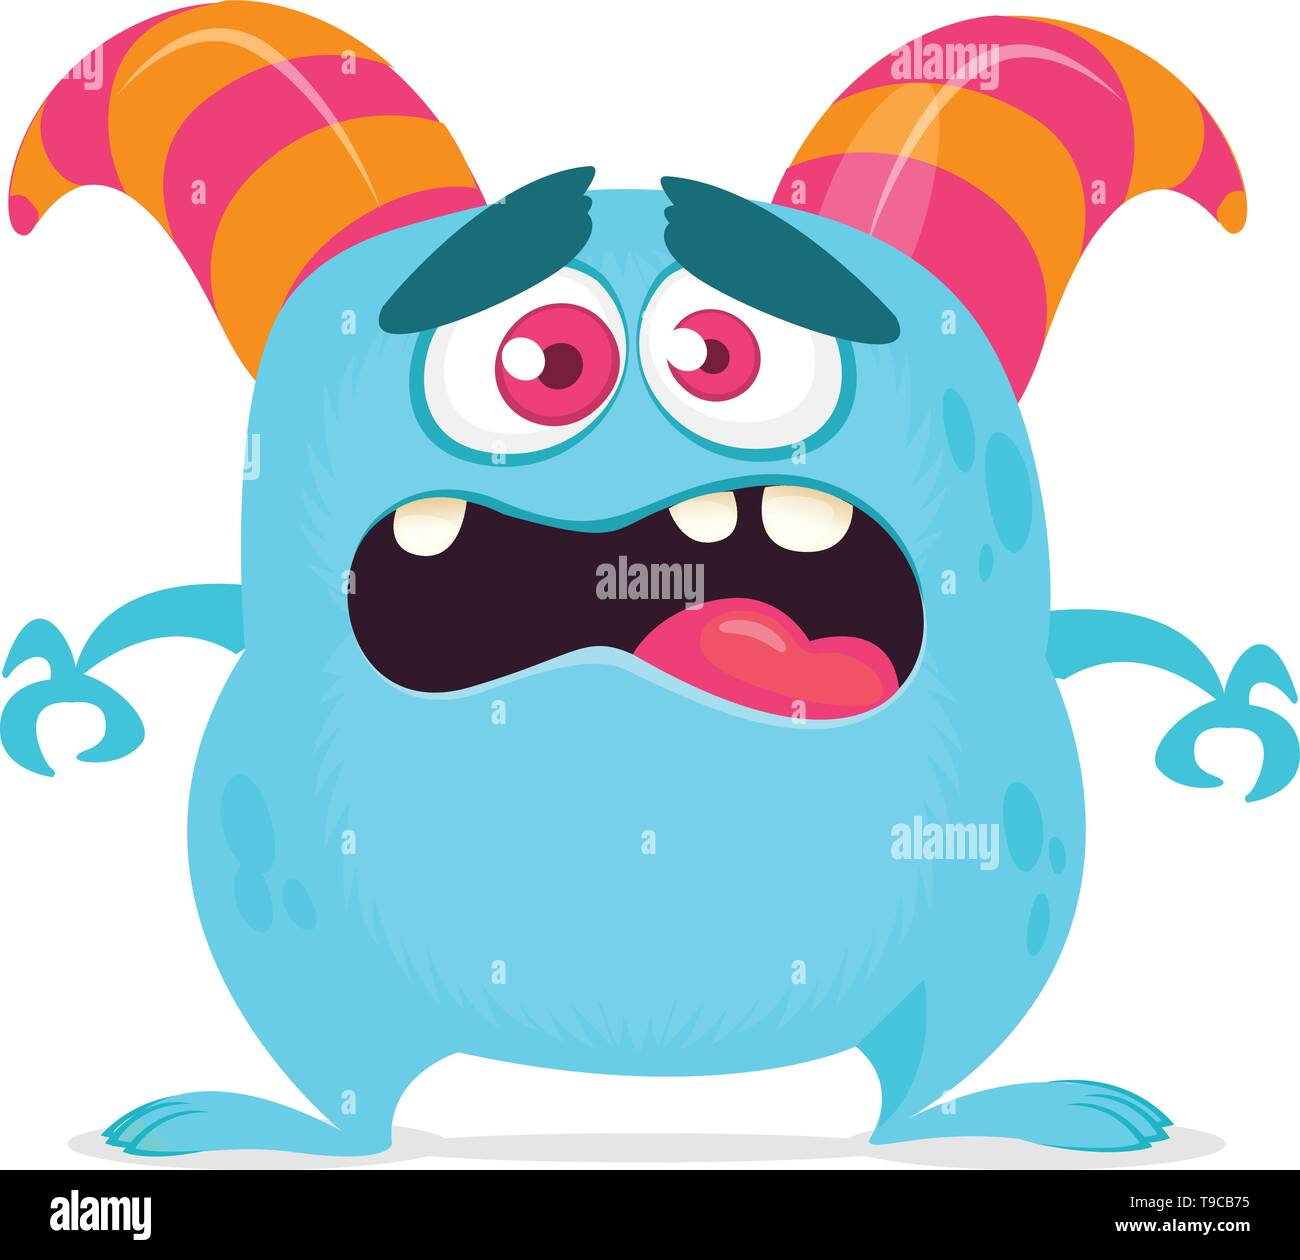 Scared cartoon monster with big mouth. Vector blue monster illustration. Halloween design - Stock Image